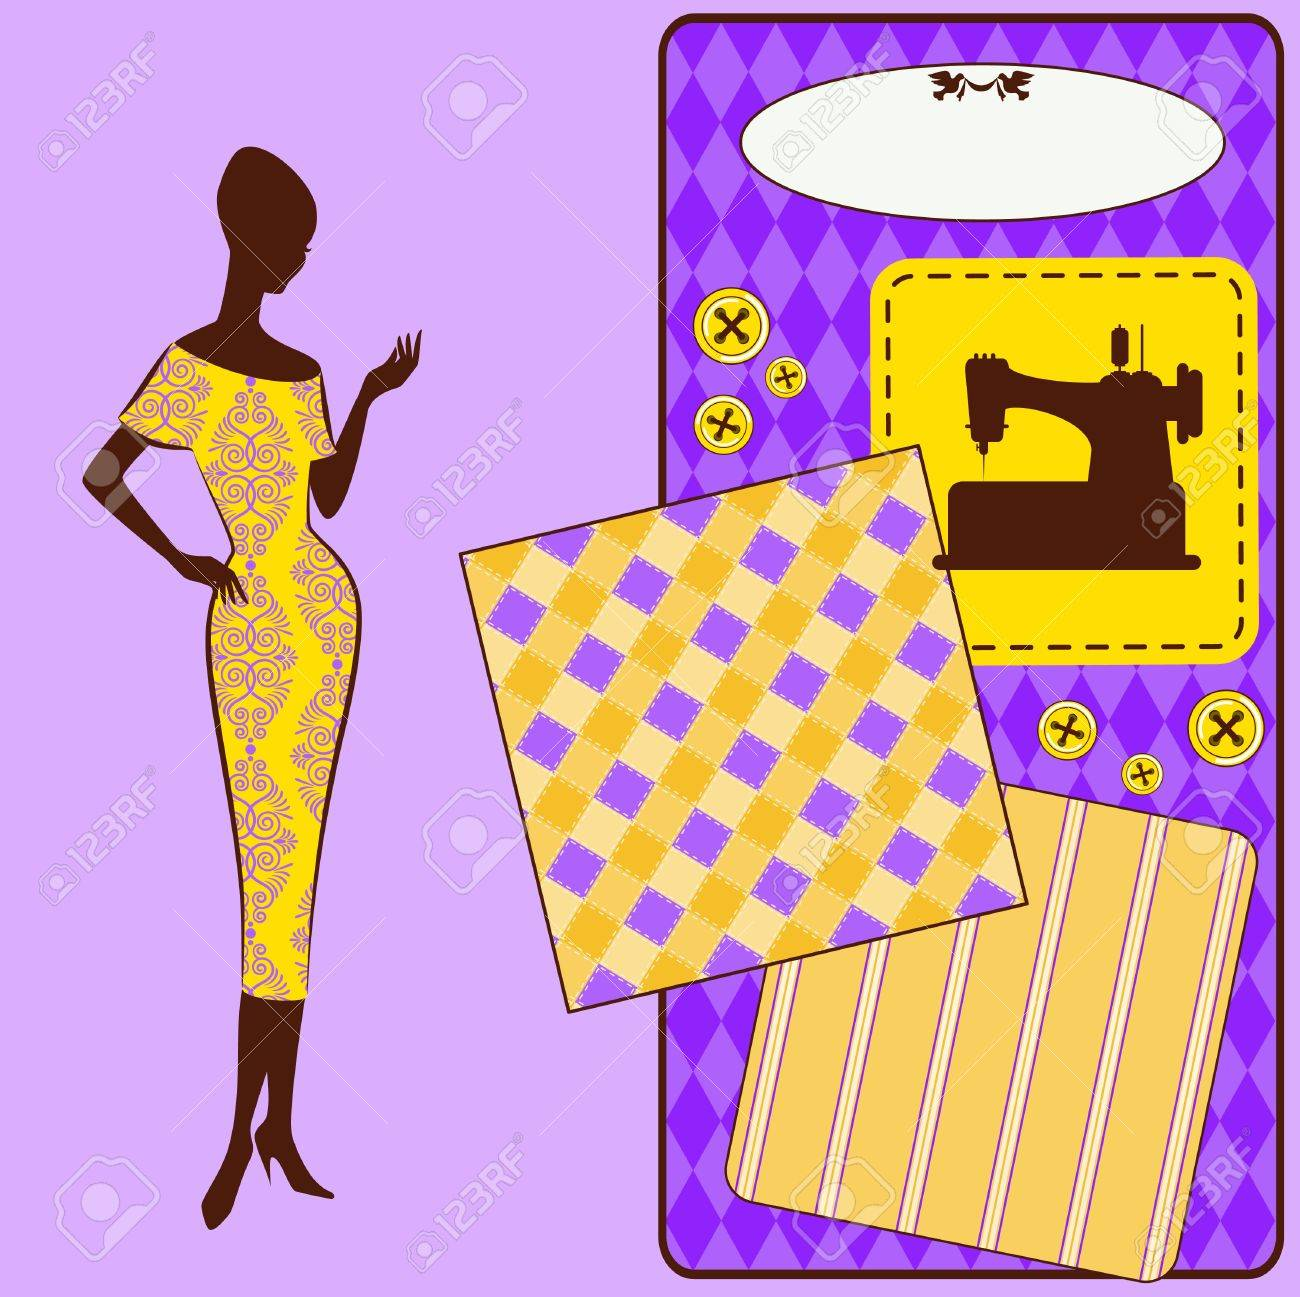 Vintage sewing elements with woman s silhouette on the background Stock Photo - 16966729